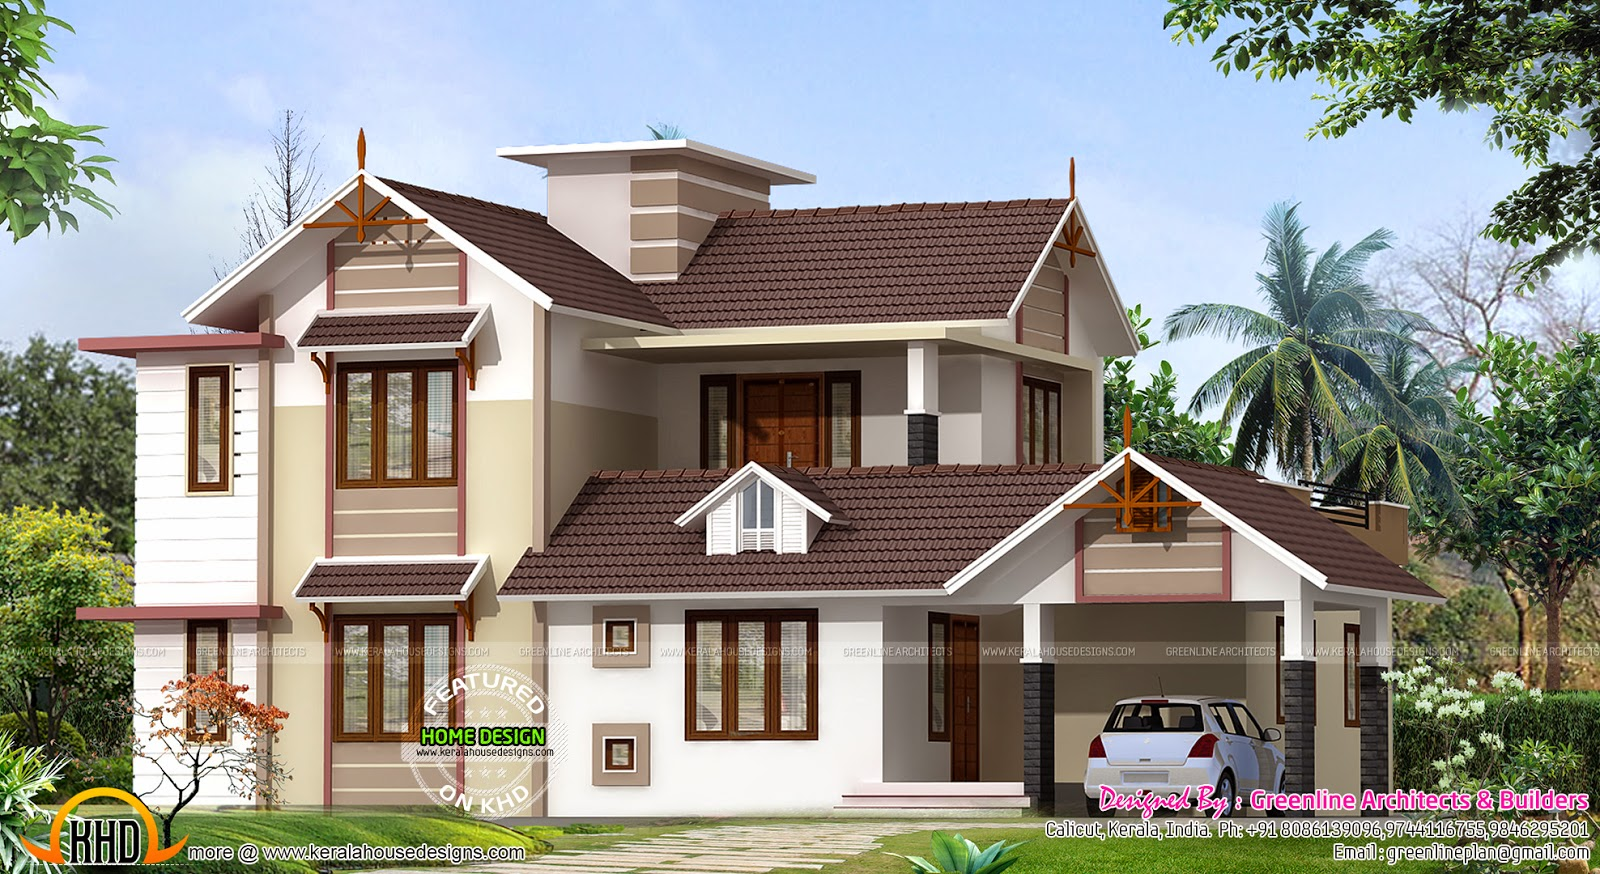 2400 sq ft new house design kerala home design and floor Best new home designs